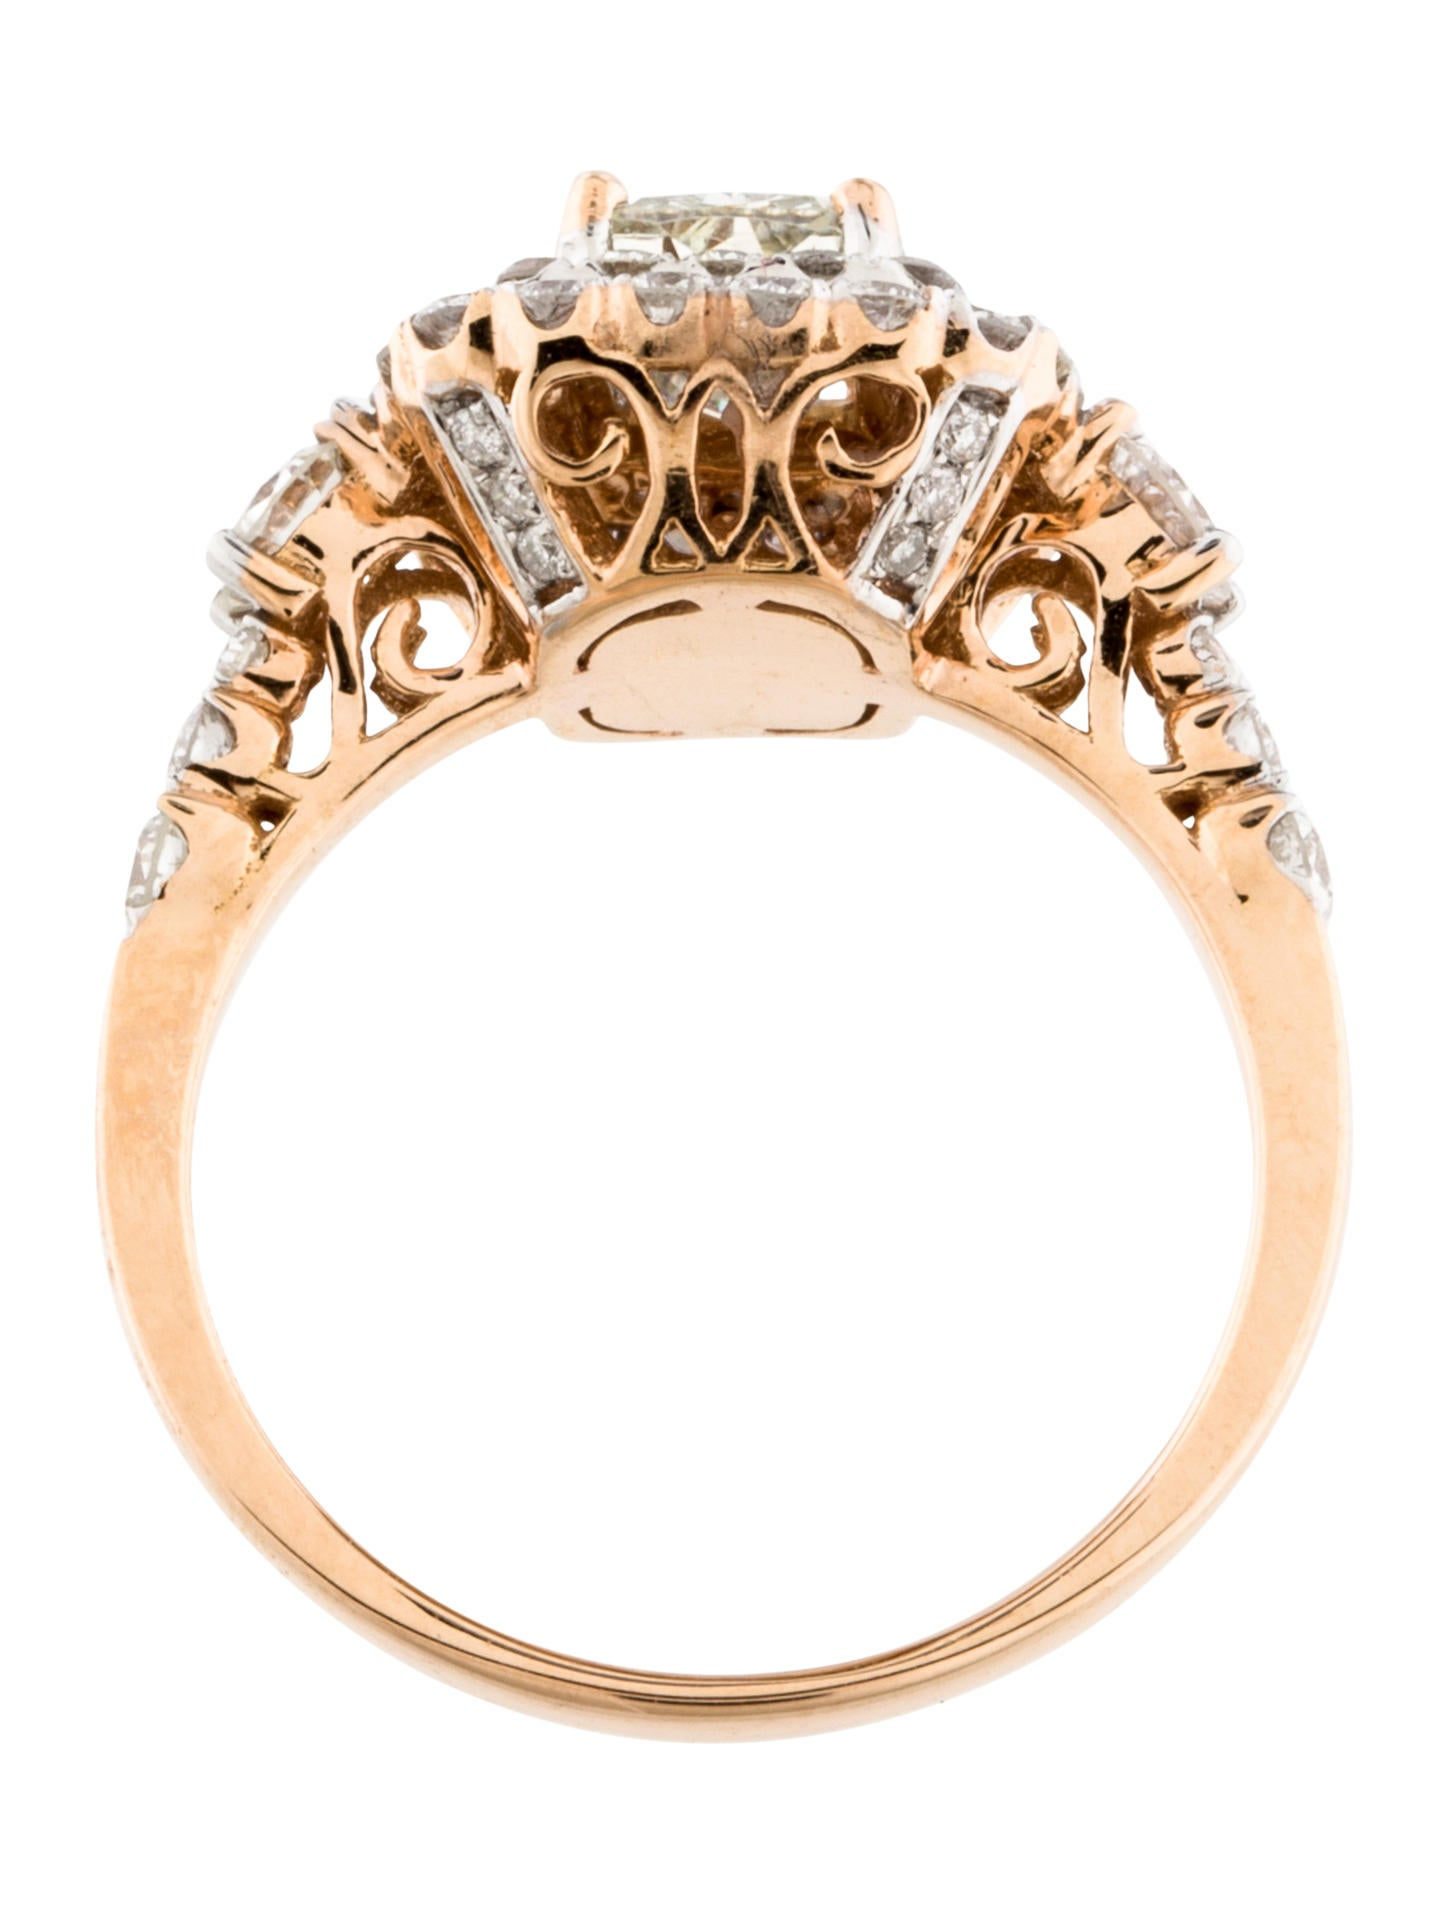 18k diamond double halo engagement ring rings. Black Bedroom Furniture Sets. Home Design Ideas